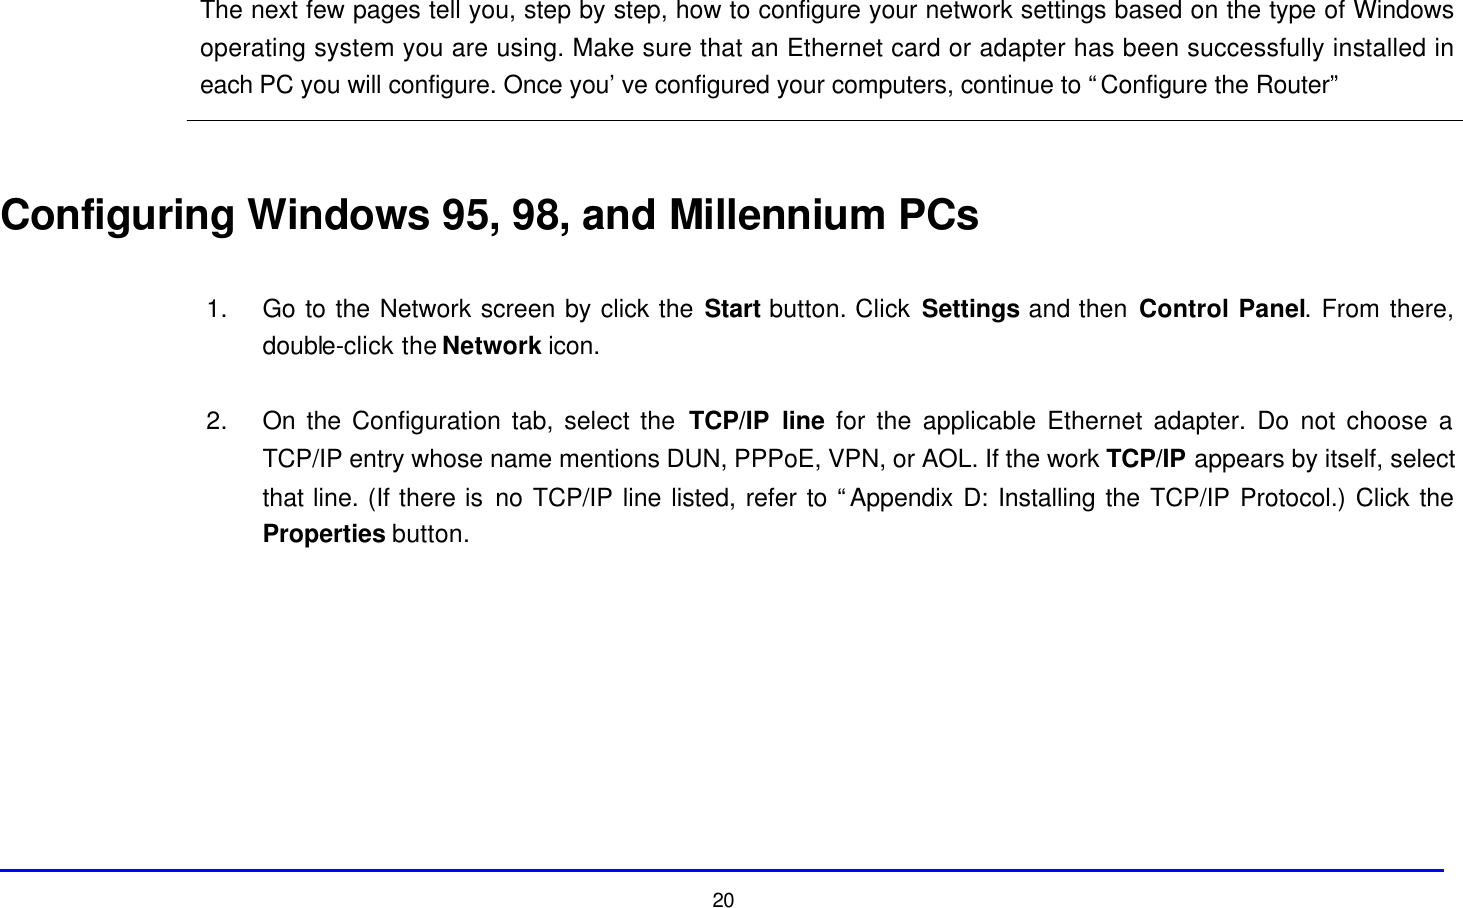 """20 The next few pages tell you, step by step, how to configure your network settings based on the type of Windows operating system you are using. Make sure that an Ethernet card or adapter has been successfully installed in each PC you will configure. Once you've configured your computers, continue to """"Configure the Router""""   Configuring Windows 95, 98, and Millennium PCs  1. Go to the Network screen by click the Start button. Click Settings and then Control Panel. From there, double-click the Network icon.  2. On the Configuration tab, select the TCP/IP line for the applicable Ethernet adapter. Do not choose a TCP/IP entry whose name mentions DUN, PPPoE, VPN, or AOL. If the work TCP/IP appears by itself, select that line. (If there is no TCP/IP line listed, refer to """"Appendix D: Installing the TCP/IP Protocol.) Click the Properties button."""